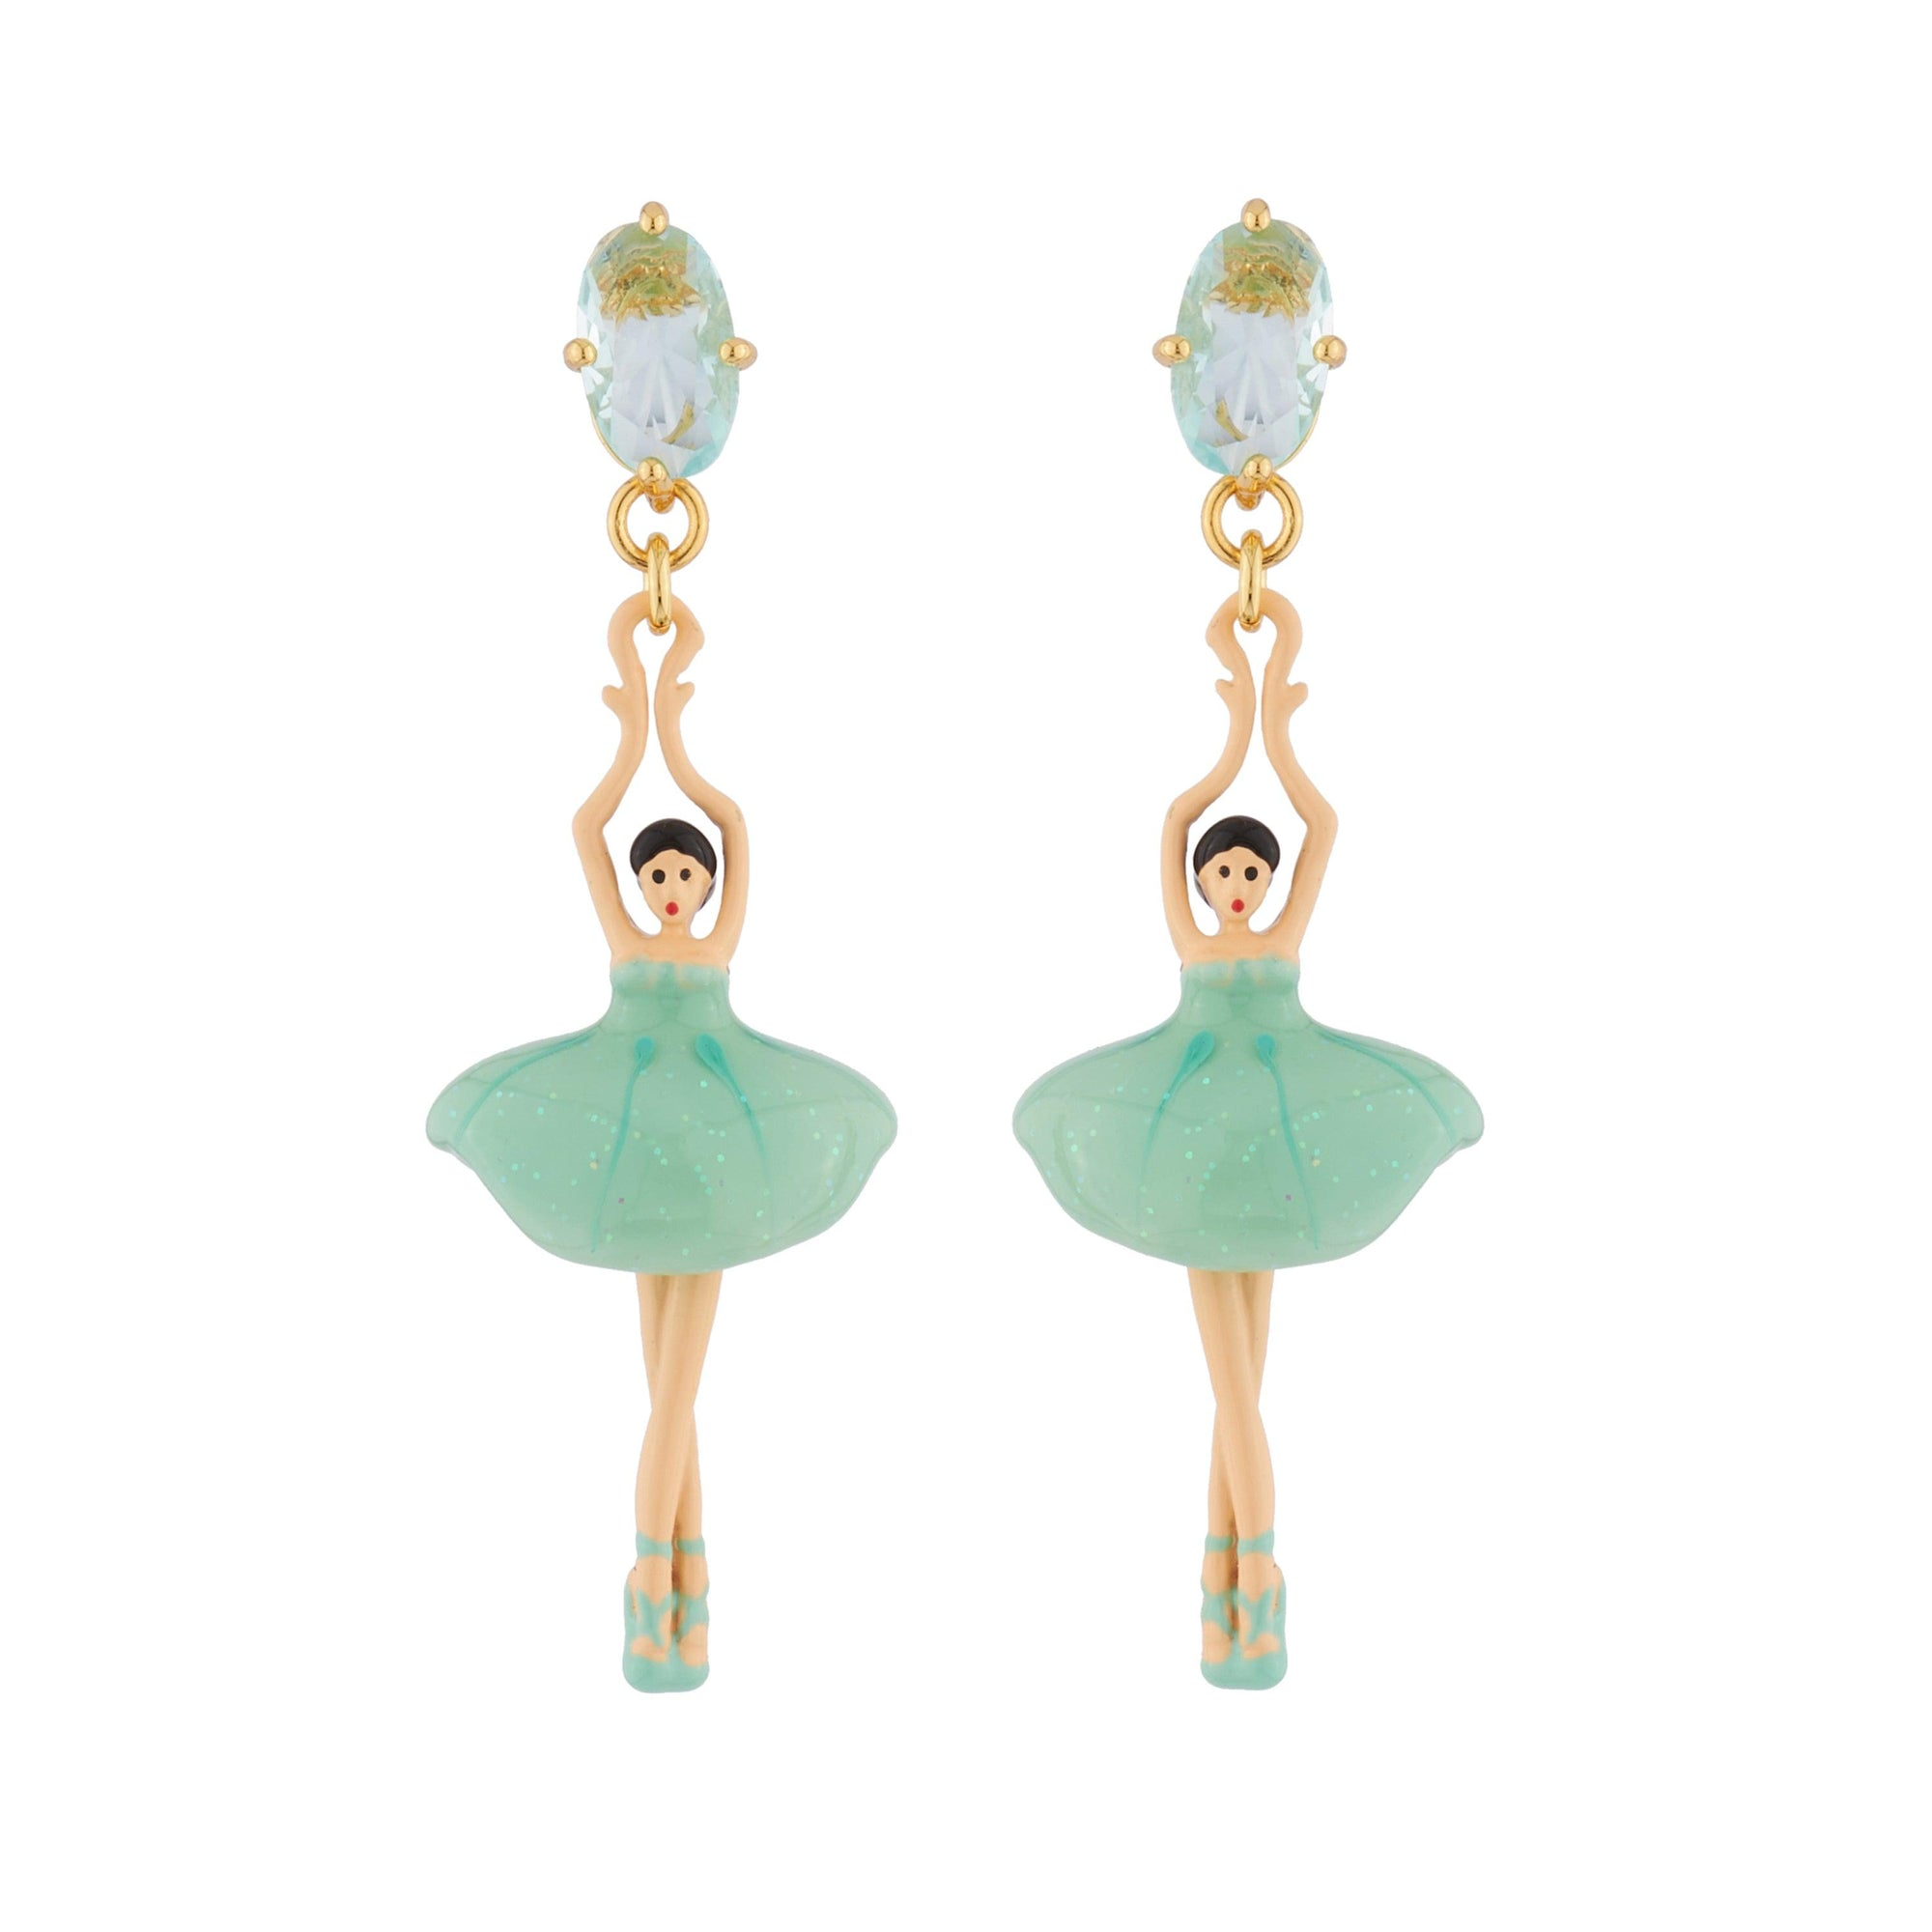 LES NÉRÉIDES Blue Ballerina Stud Earrings